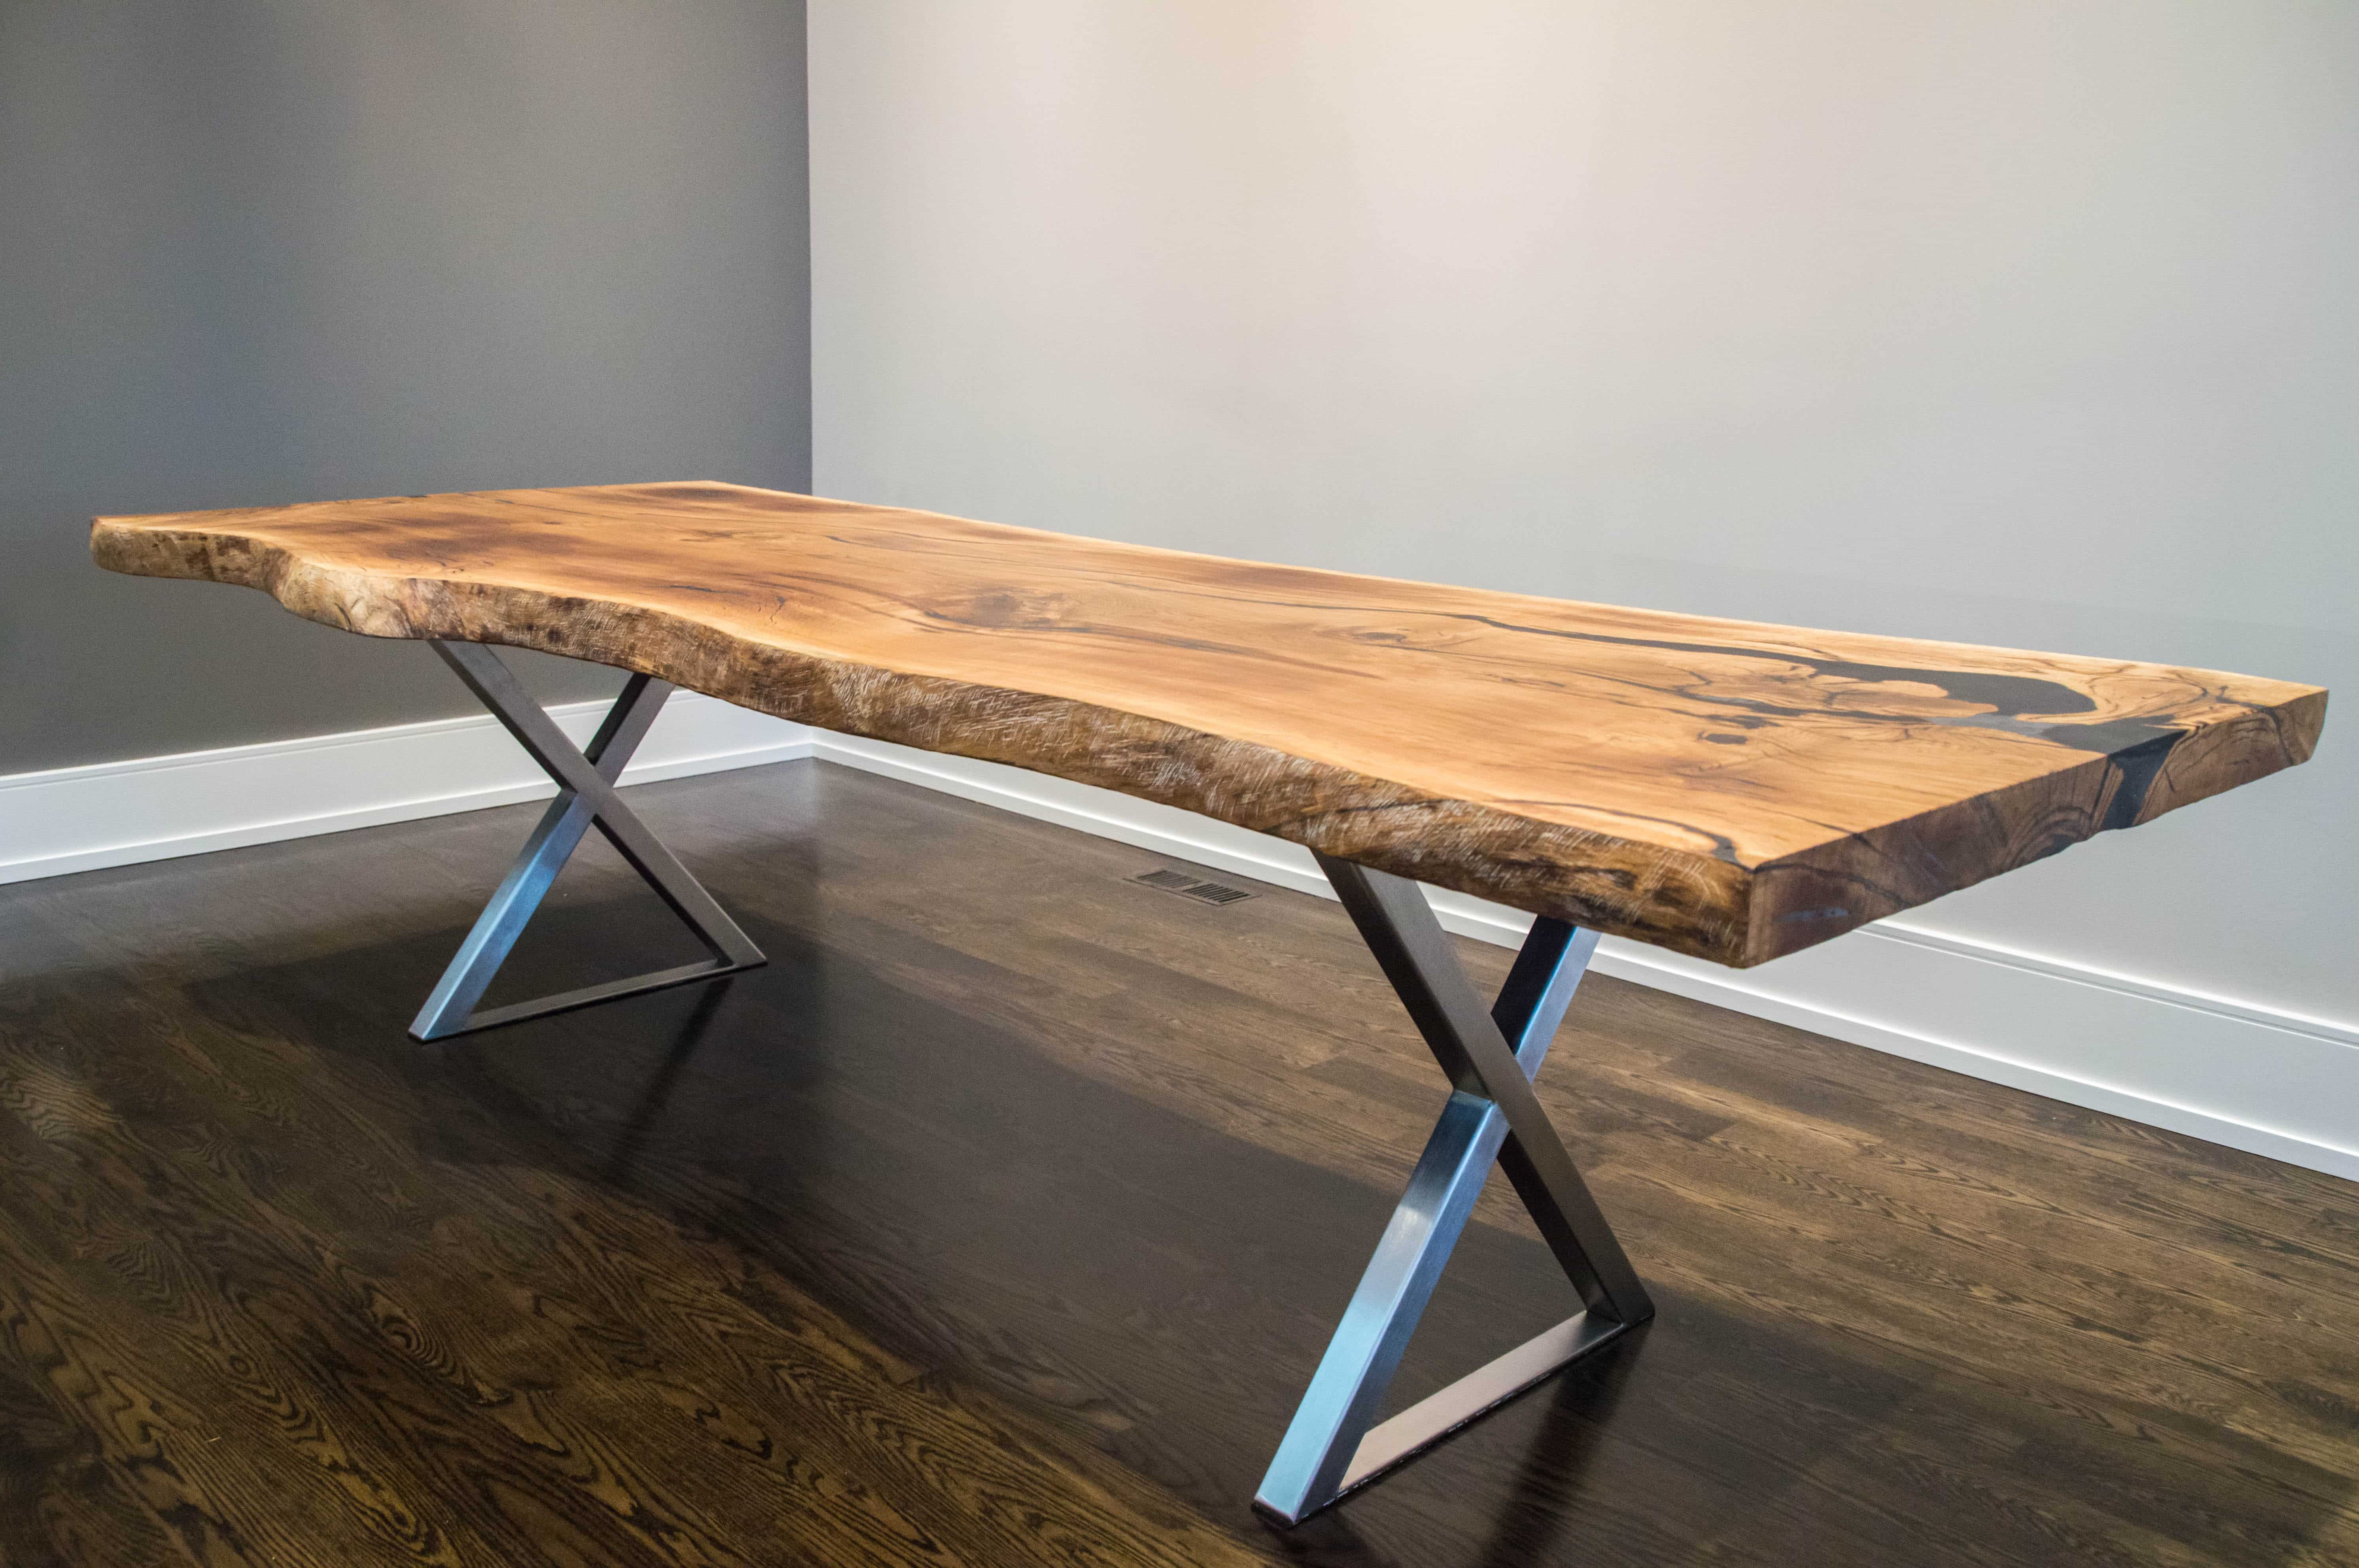 Lee's Table